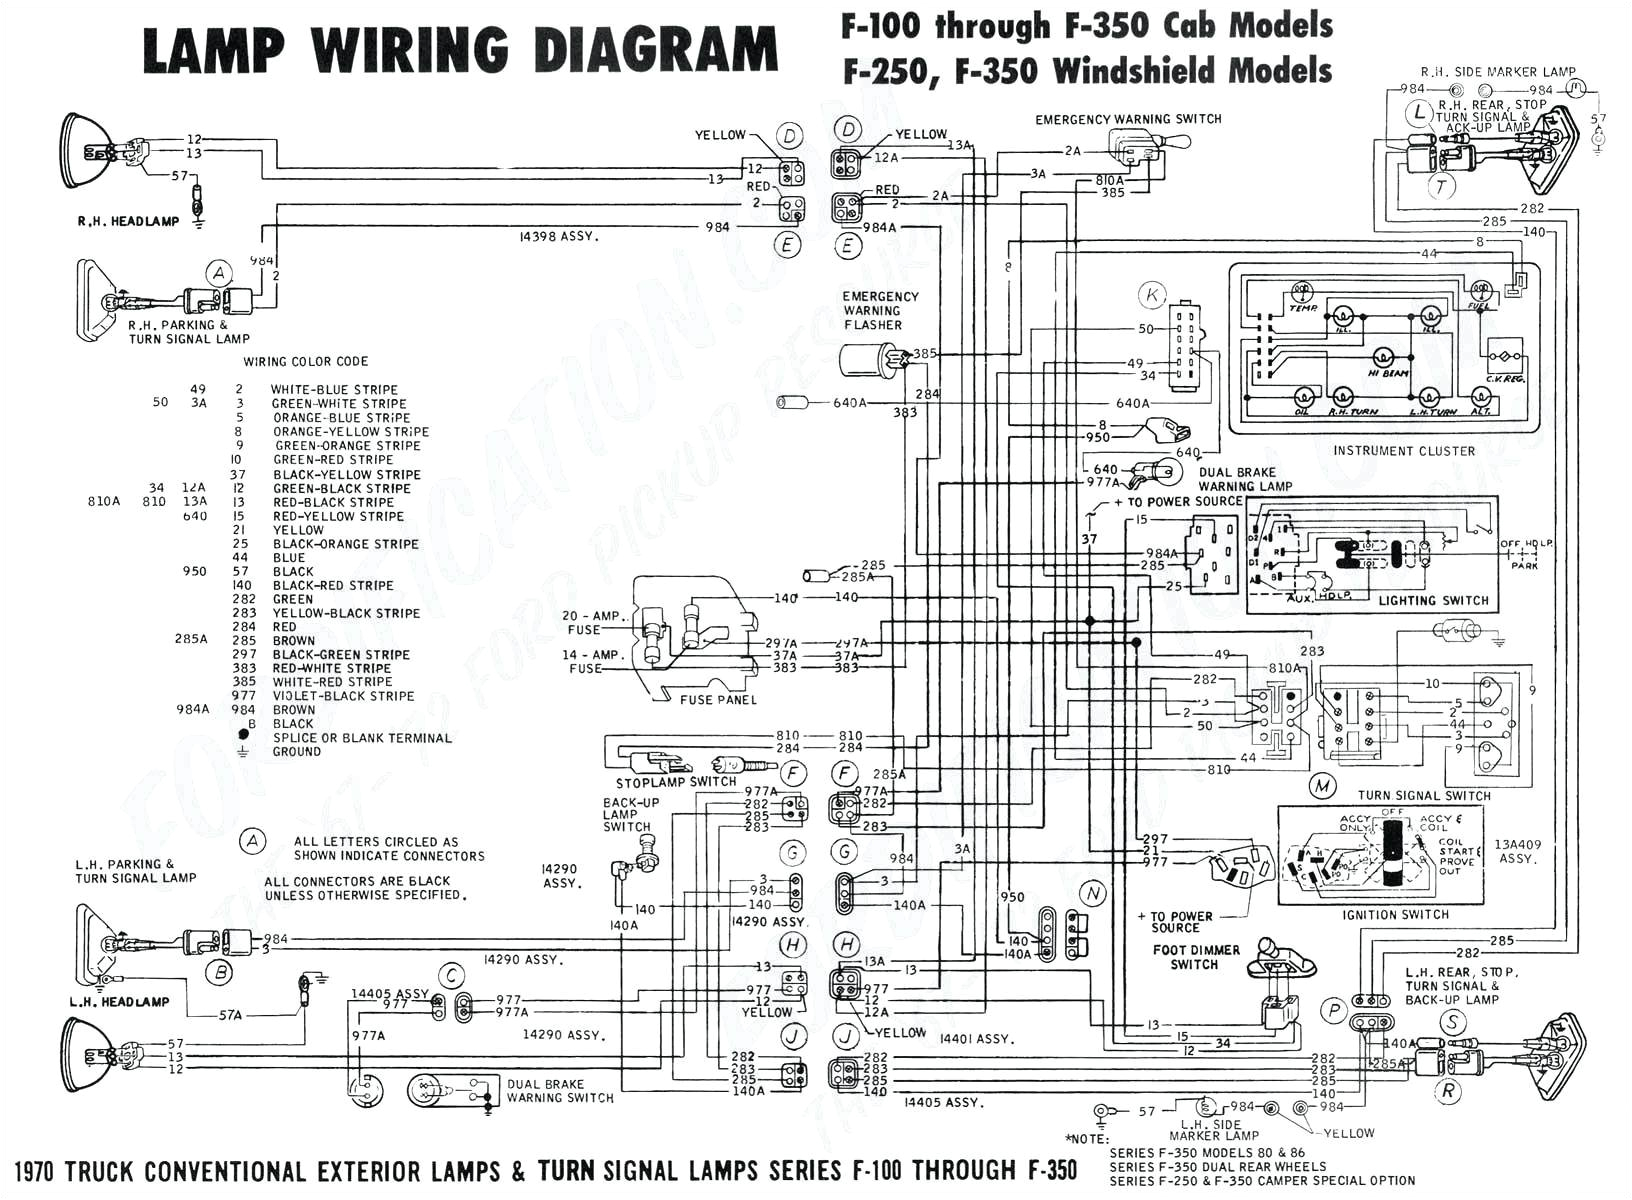 4 Way Flat Trailer Connector Wiring Diagram 2008 Jeep Grand Cherokee Trailer Wiring Wiring Diagram Paper